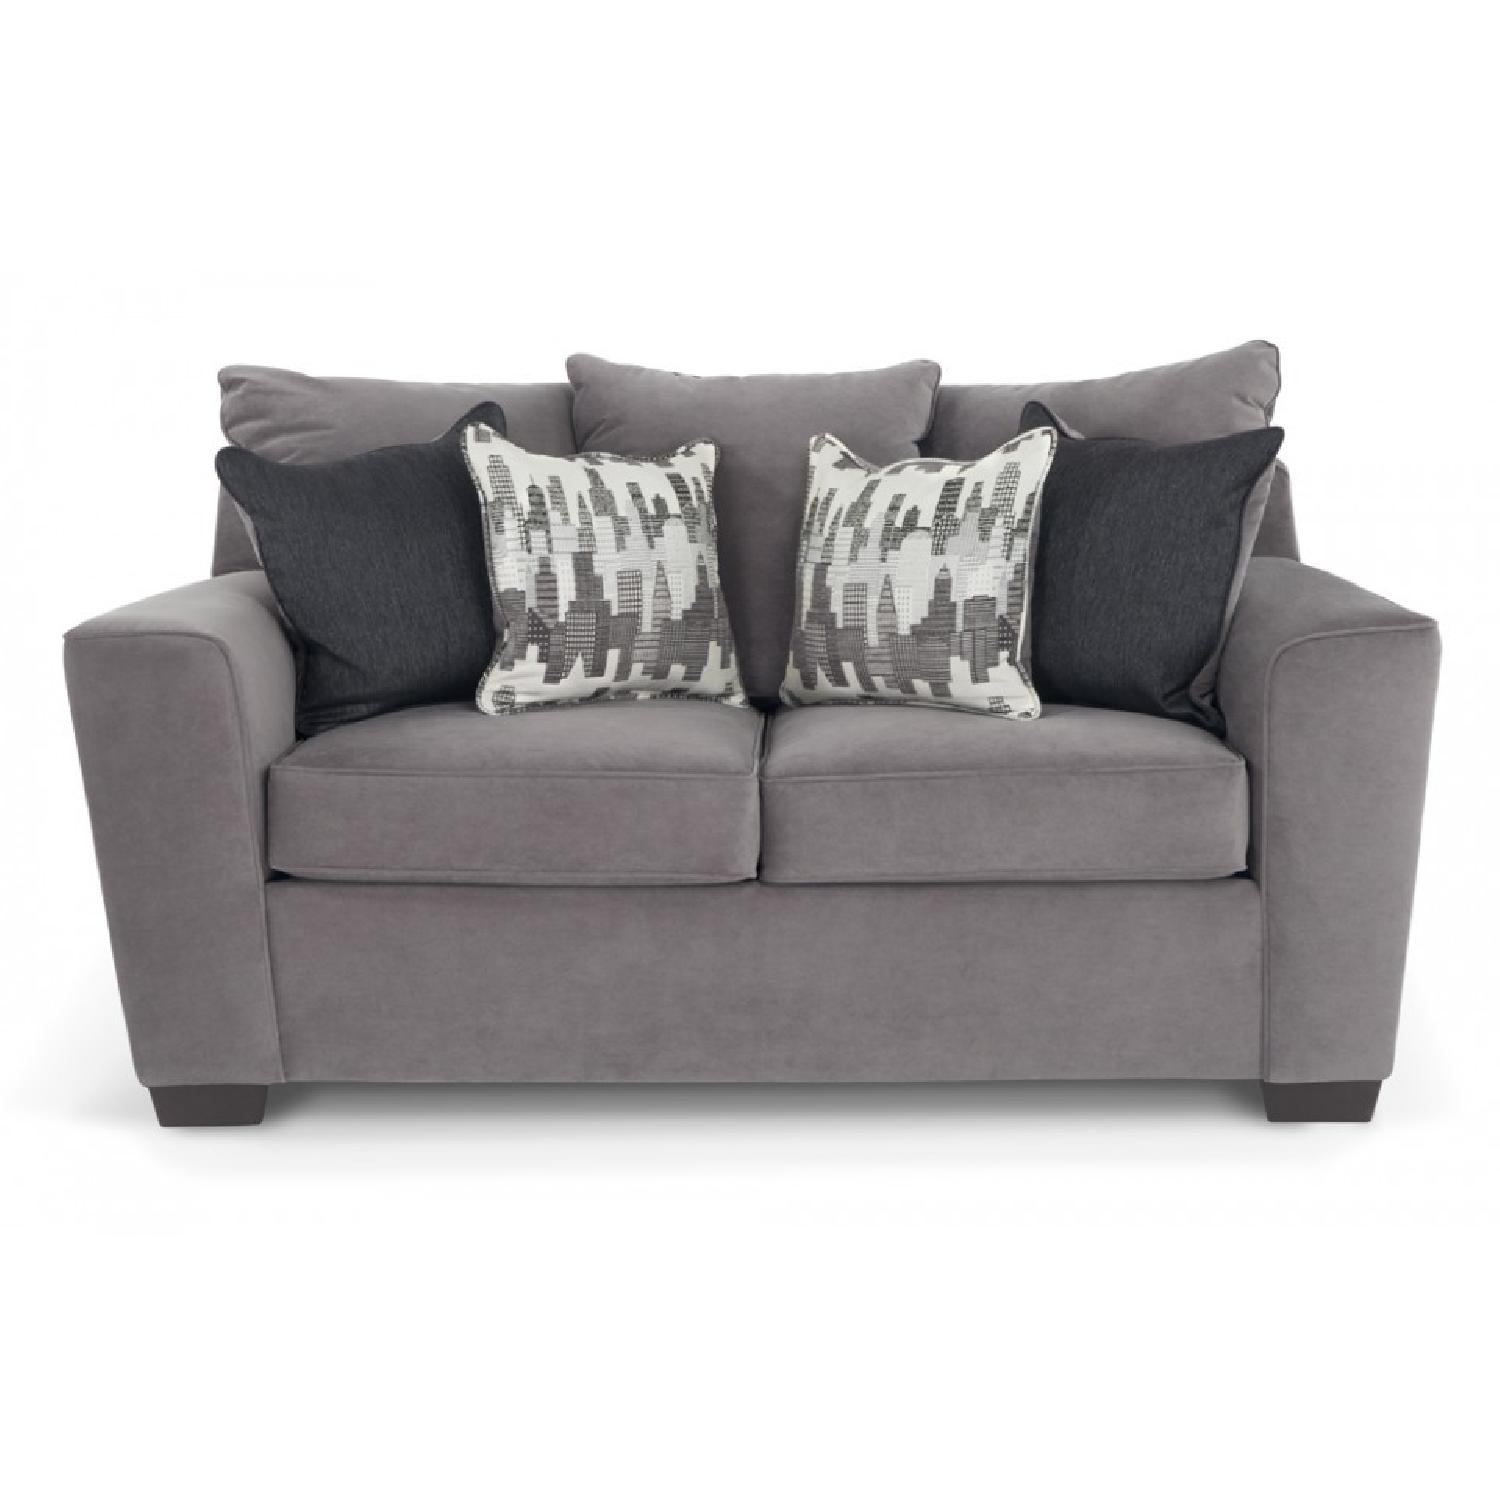 bob bobs sectionals bed discount melanie room s gallery living sofa and large sofas furniture p